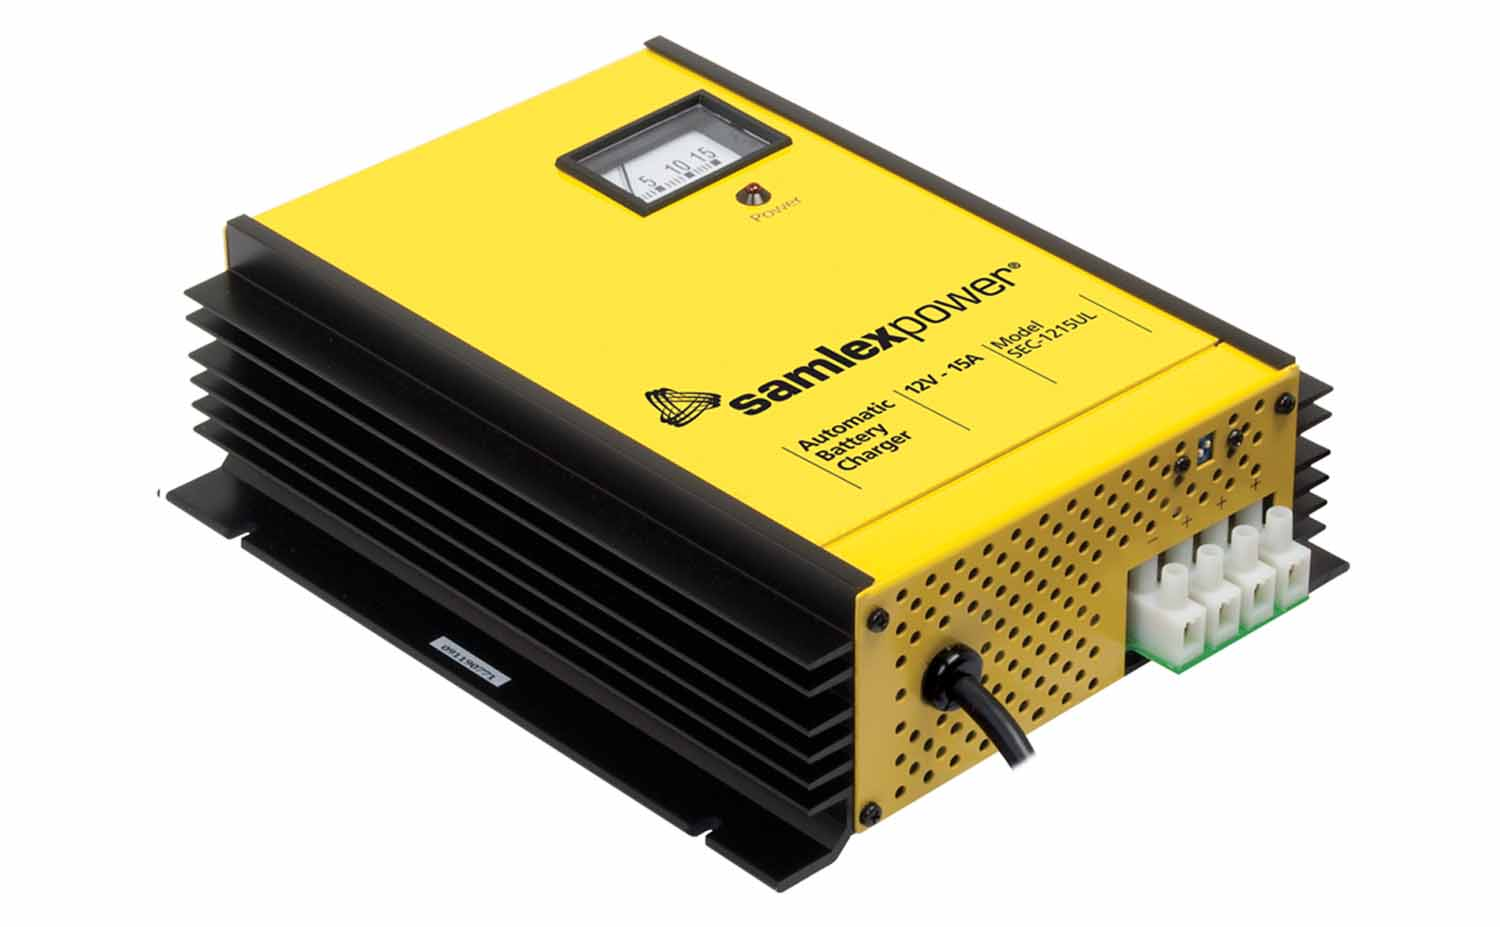 SEC2415UL - Samlex 24 Volt 15 Amp Automatic Switch Mode Battery Charger For Lead Acid Batteries Flooded, Agm Or Gel Cell, Ul Approved